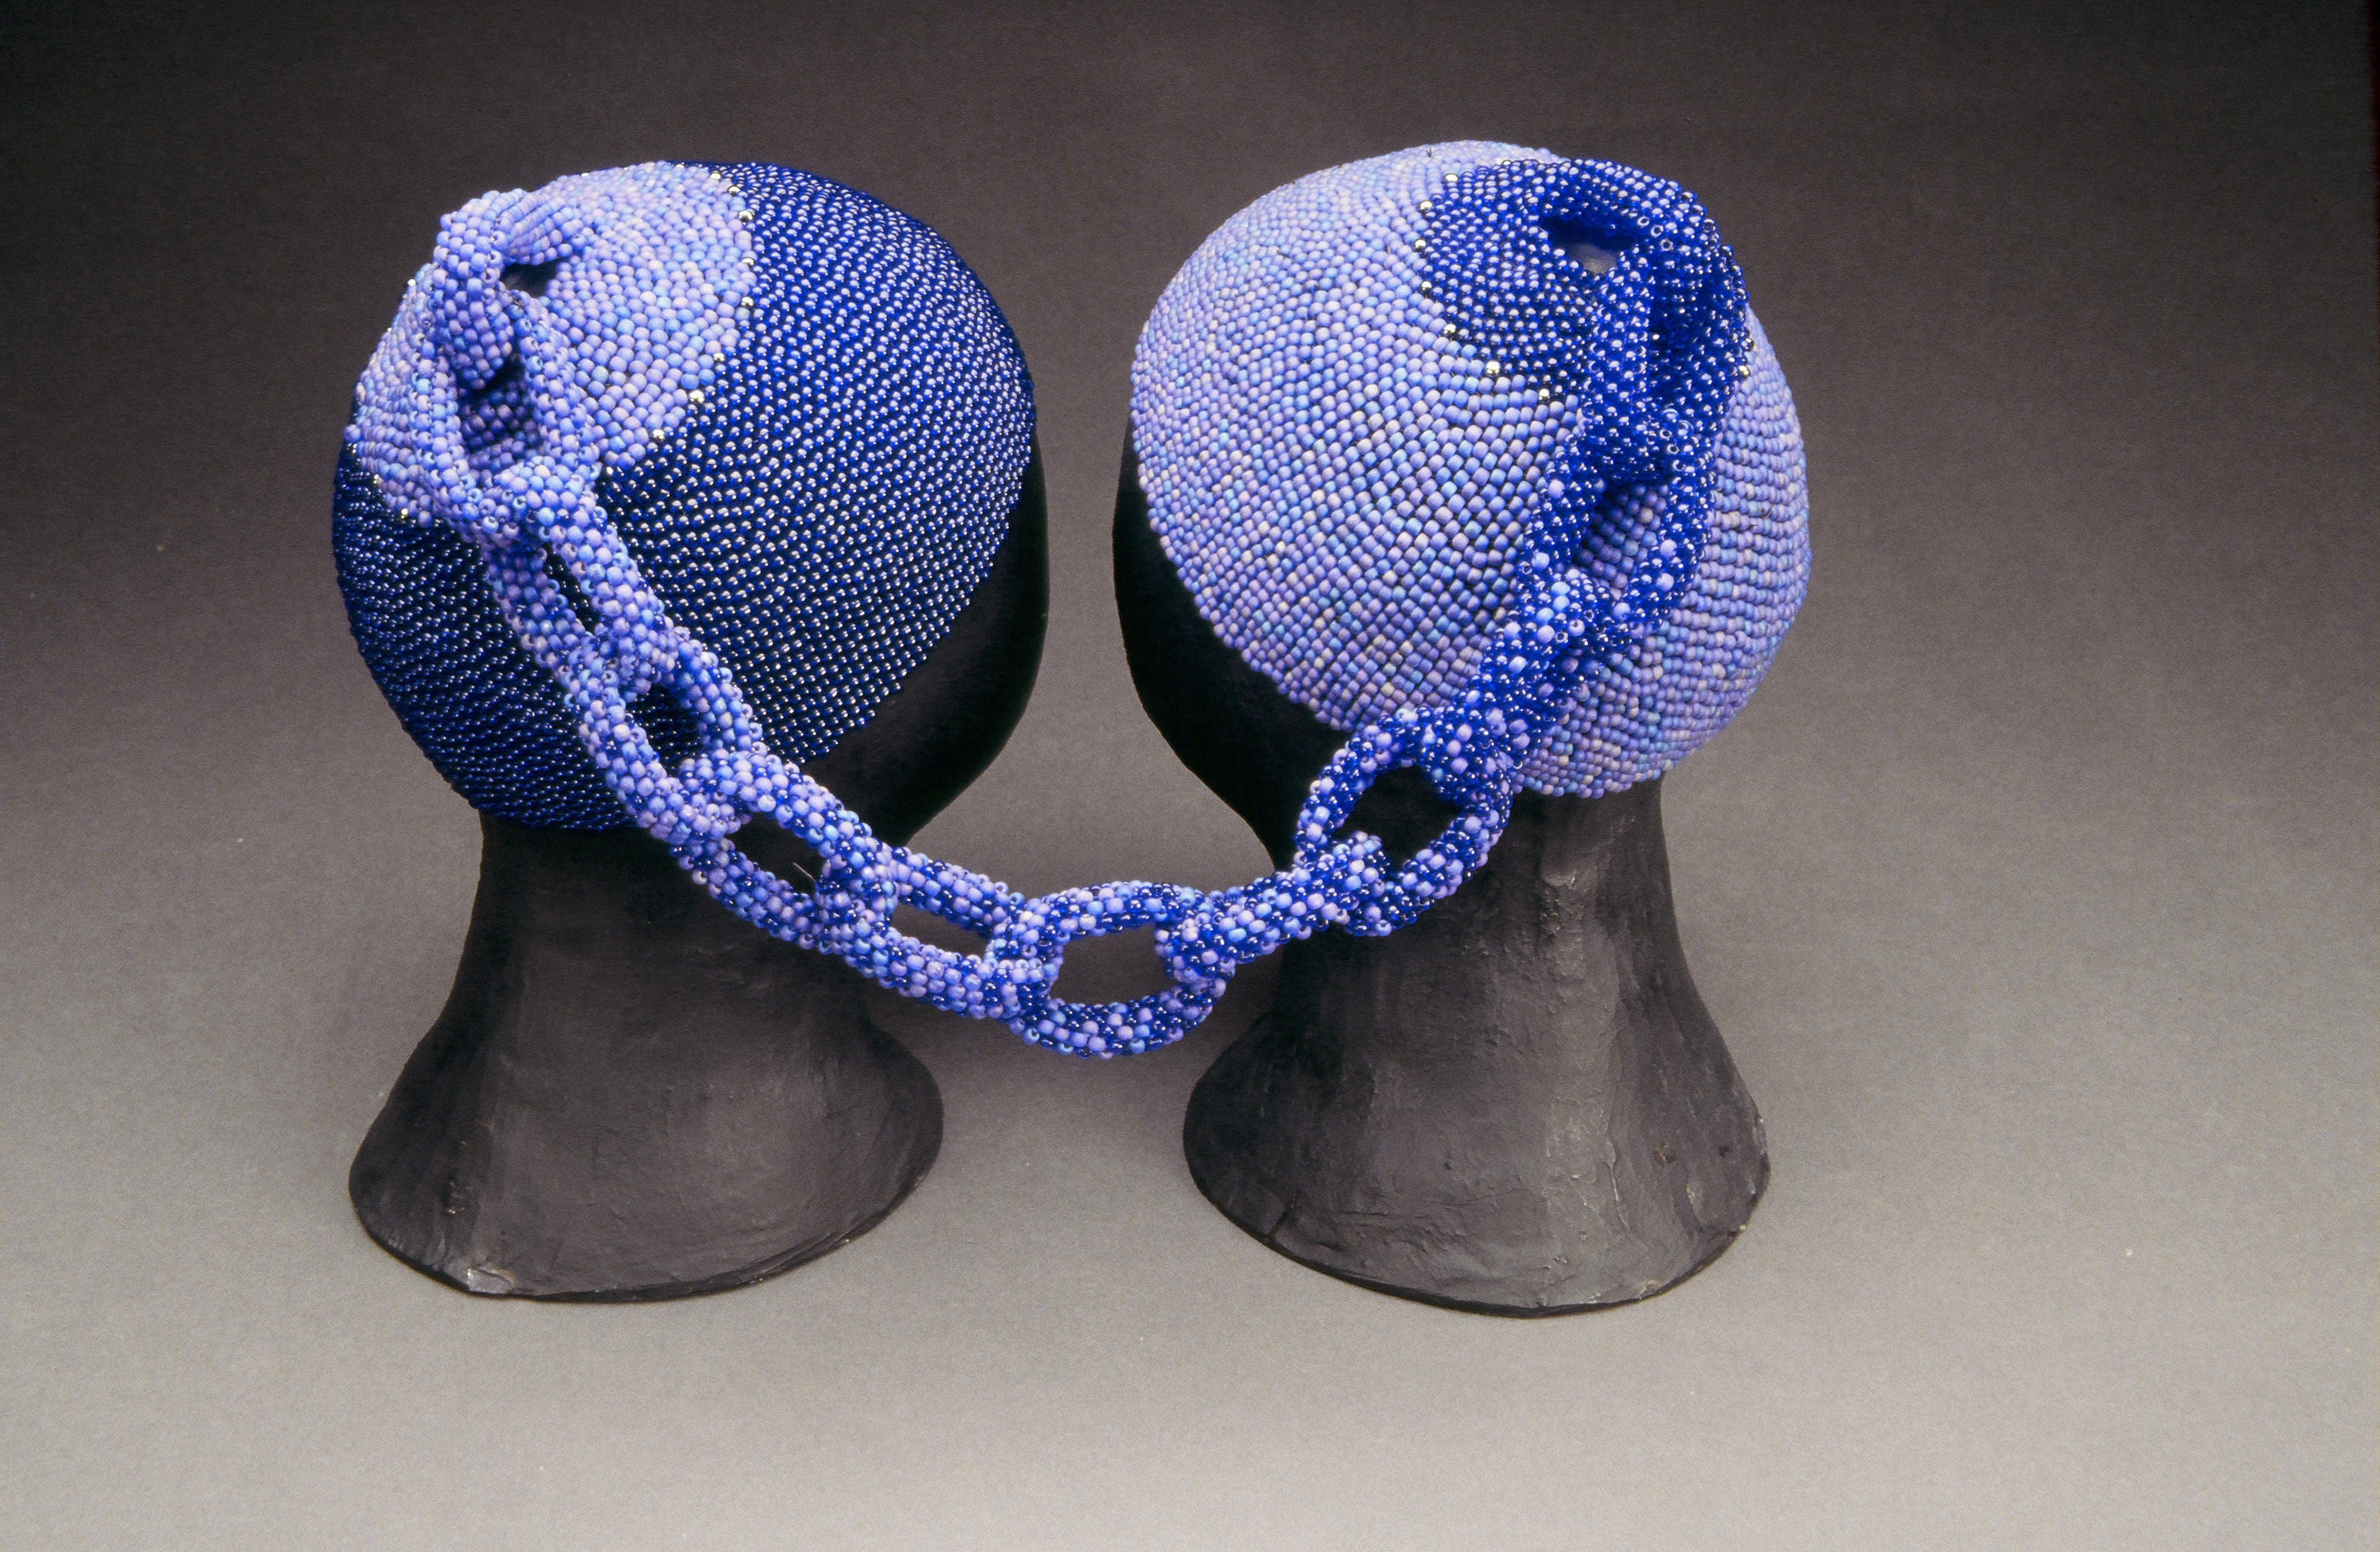 Two head caps made of small, blue glass beads rest on two black mannequin heads. The two caps are connected at the tops by a beaded chain. The left cap is made of darker blue beads and the right cap is made of lighter blue beads. The chain combines both shades.